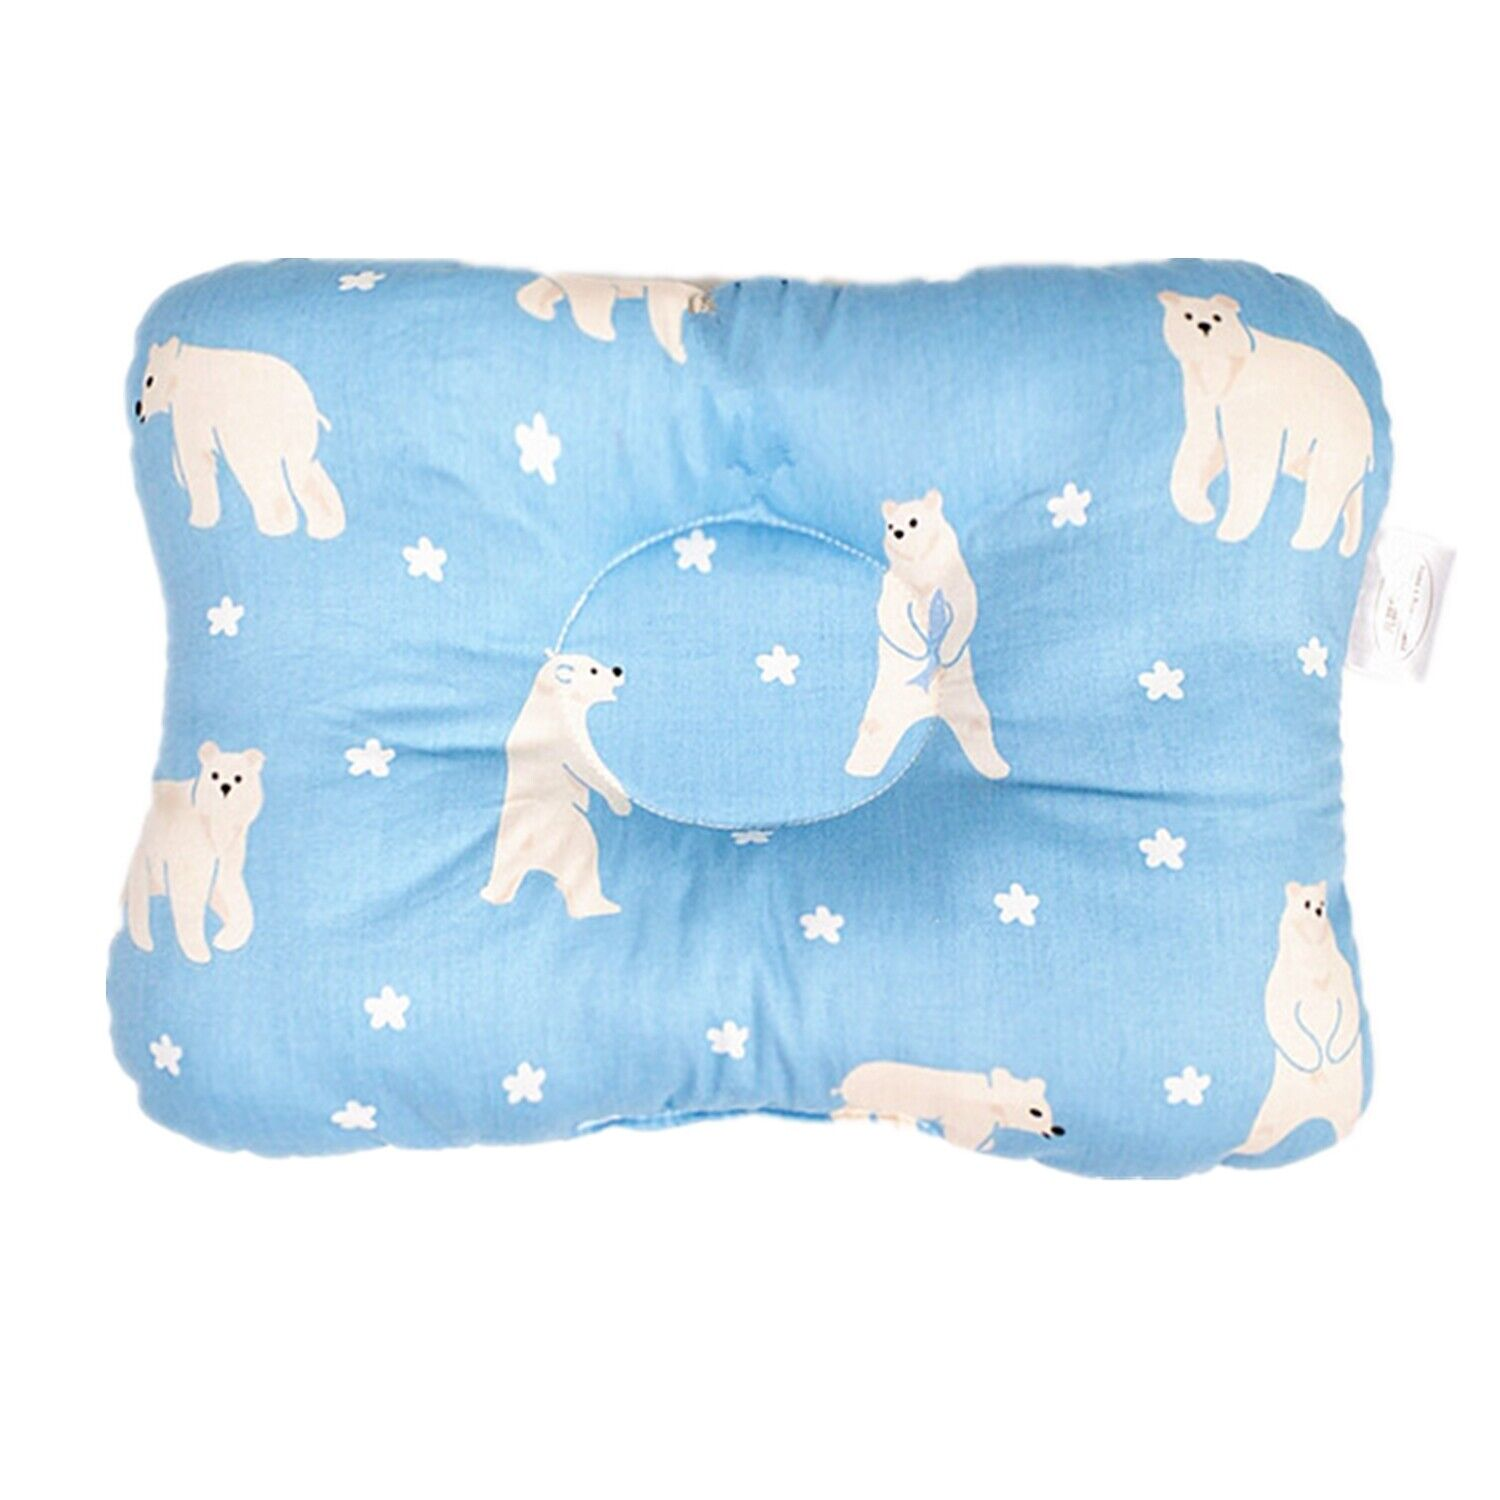 Baby Infant Newborn Pillow Flat Head Sleeping Support Prevent Soft Breathable #5